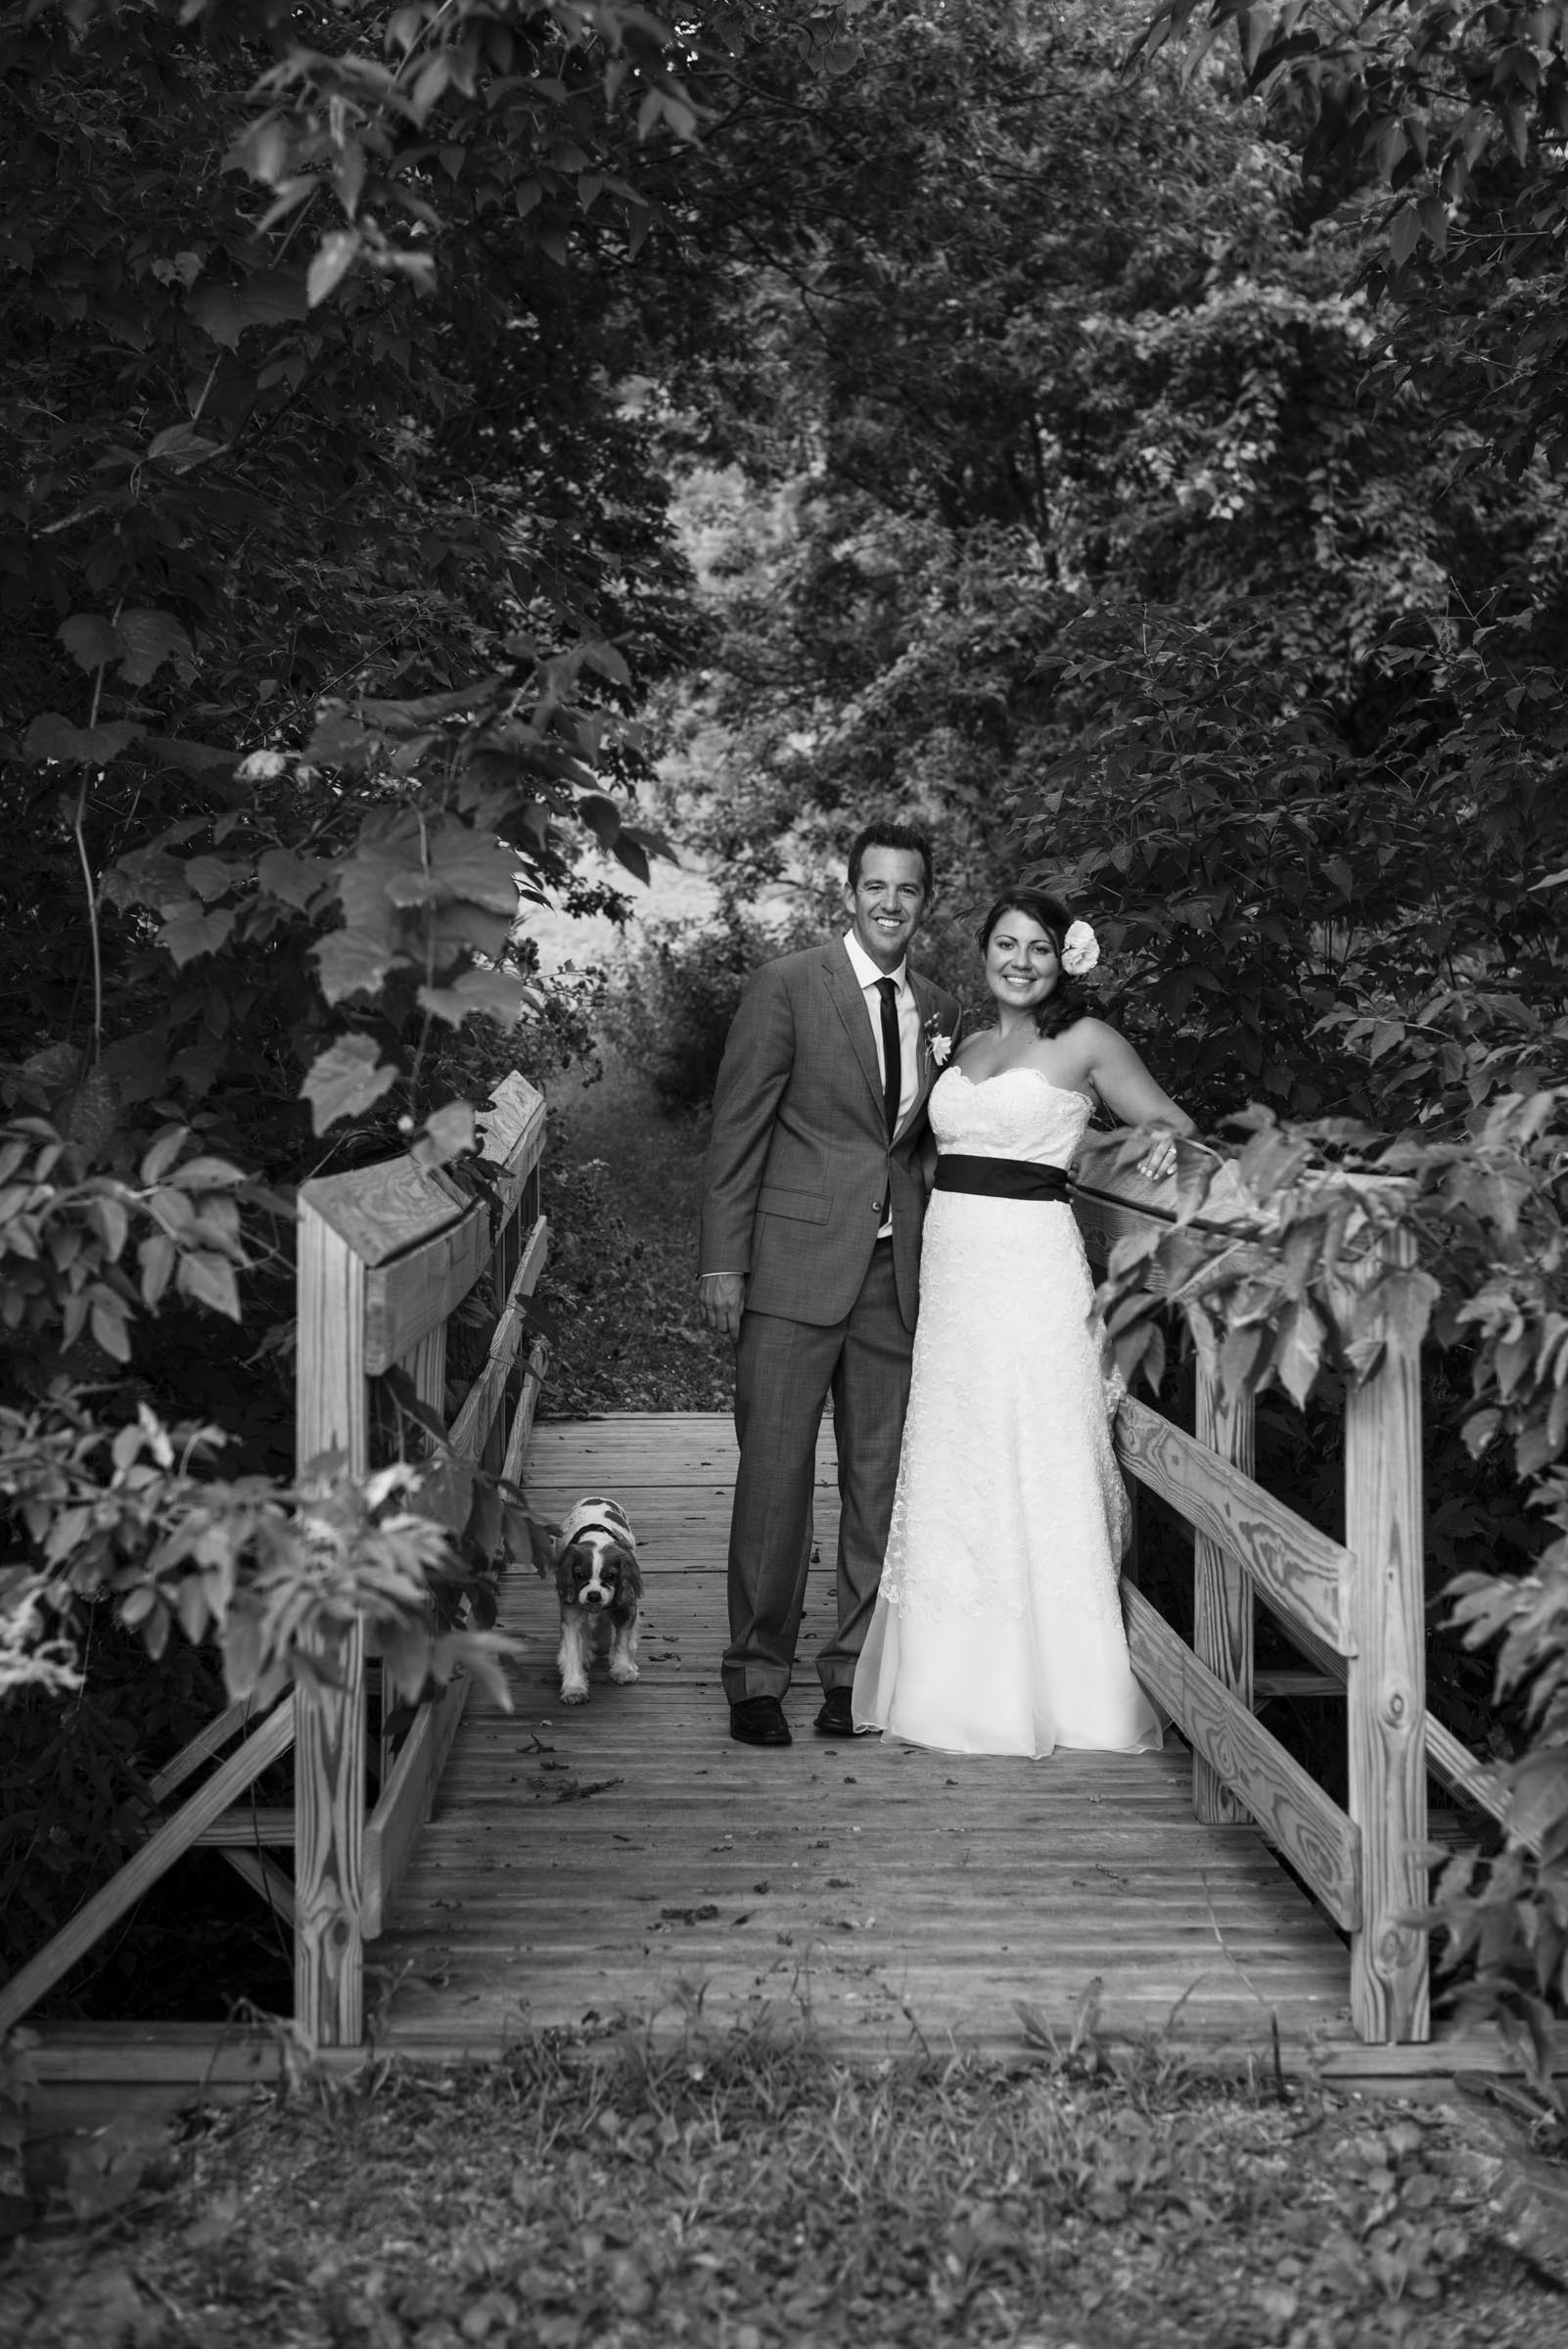 08232014-Chris&VanessaWedding-JuliaLuckettPhotography-307